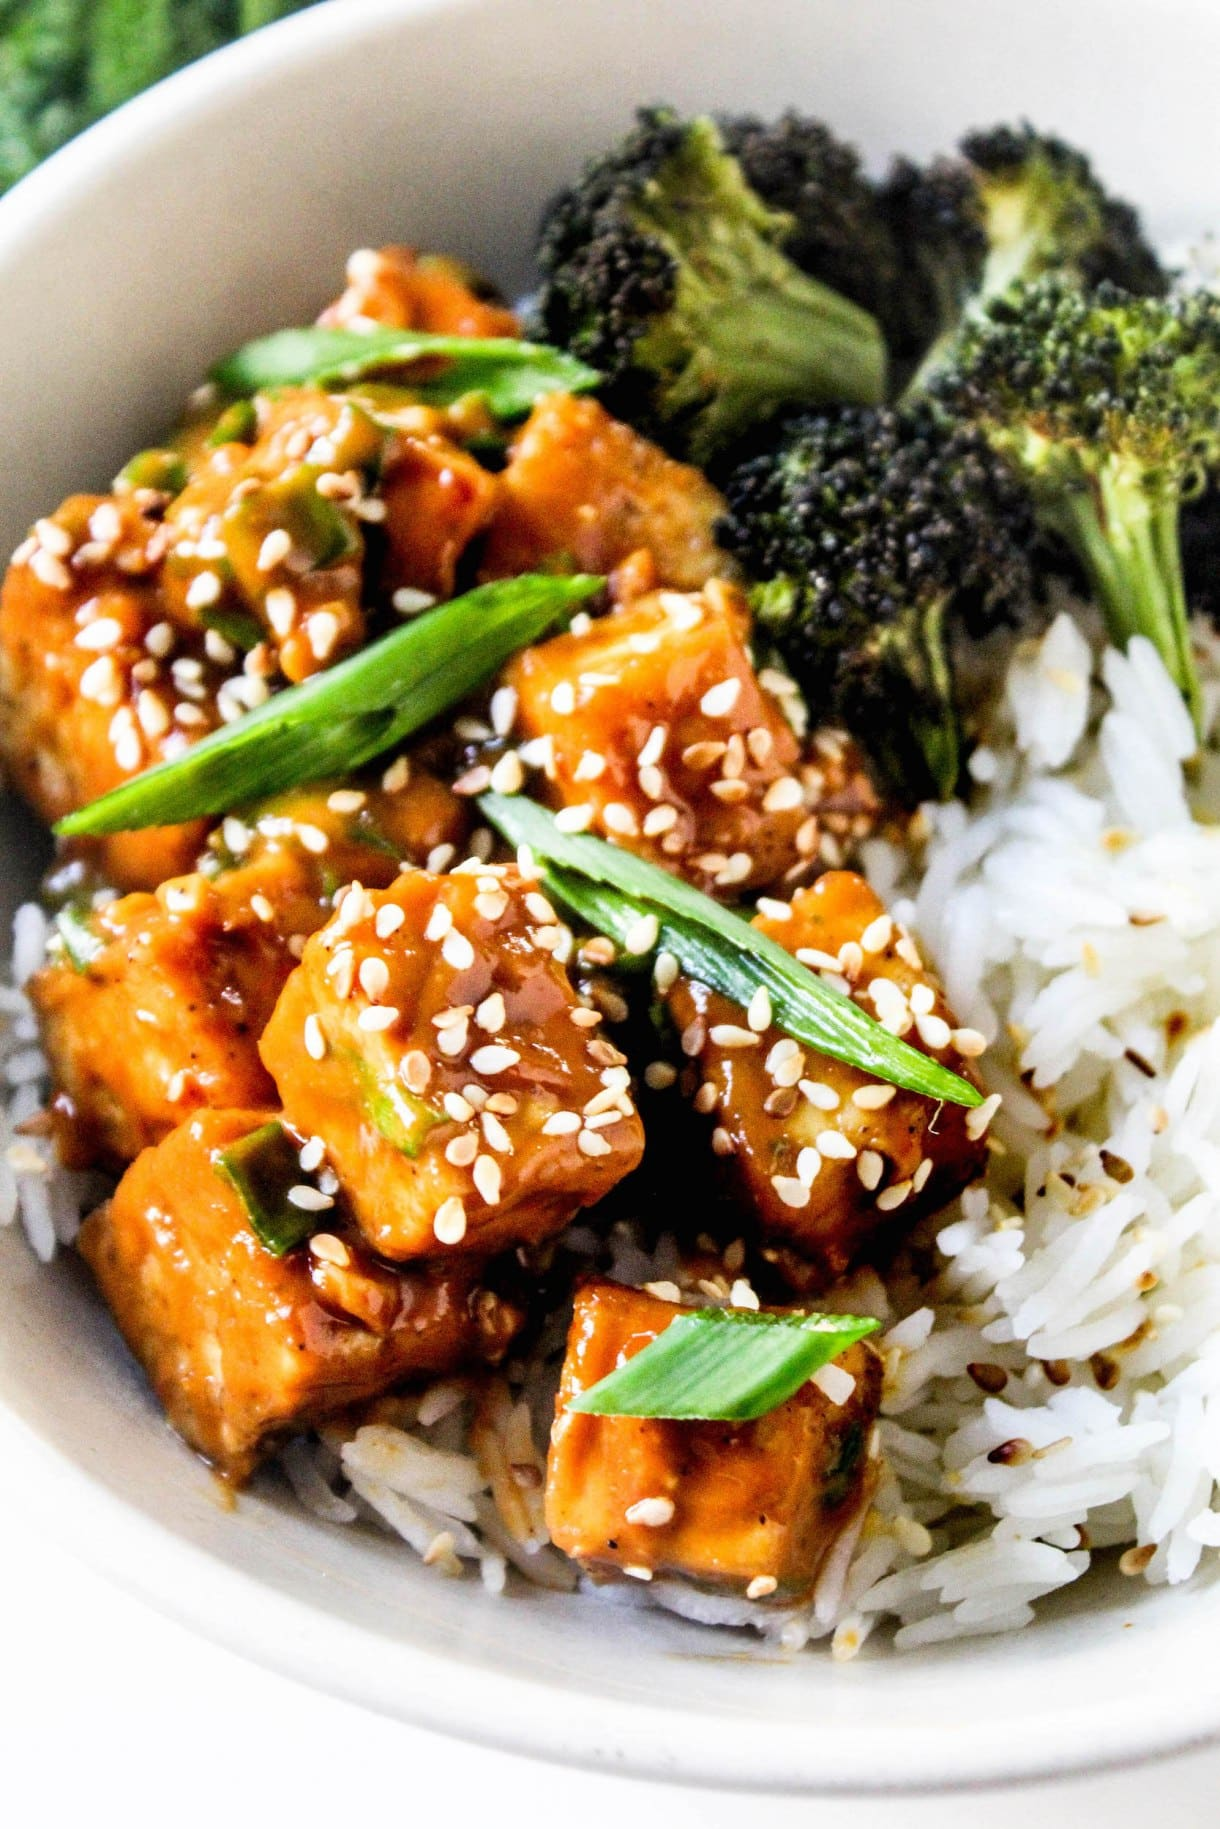 Peanut sauce tofu cubes sit on a bowl of white rice with a side of broccoli inside a white bowl.